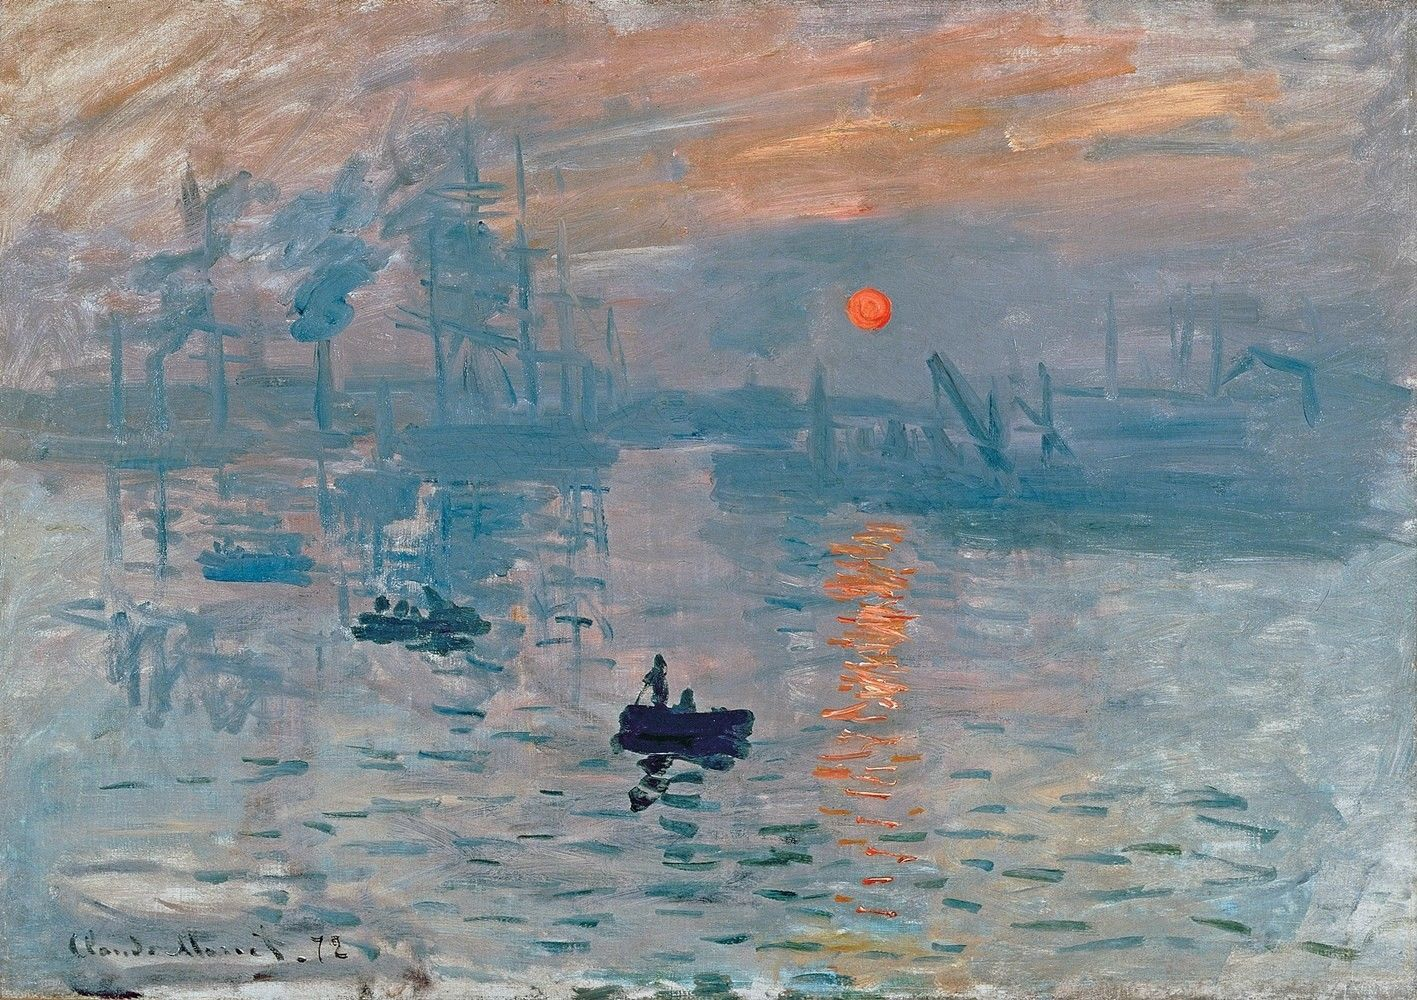 Impression Sunrise Painting by Claude Monet Art Reproduction